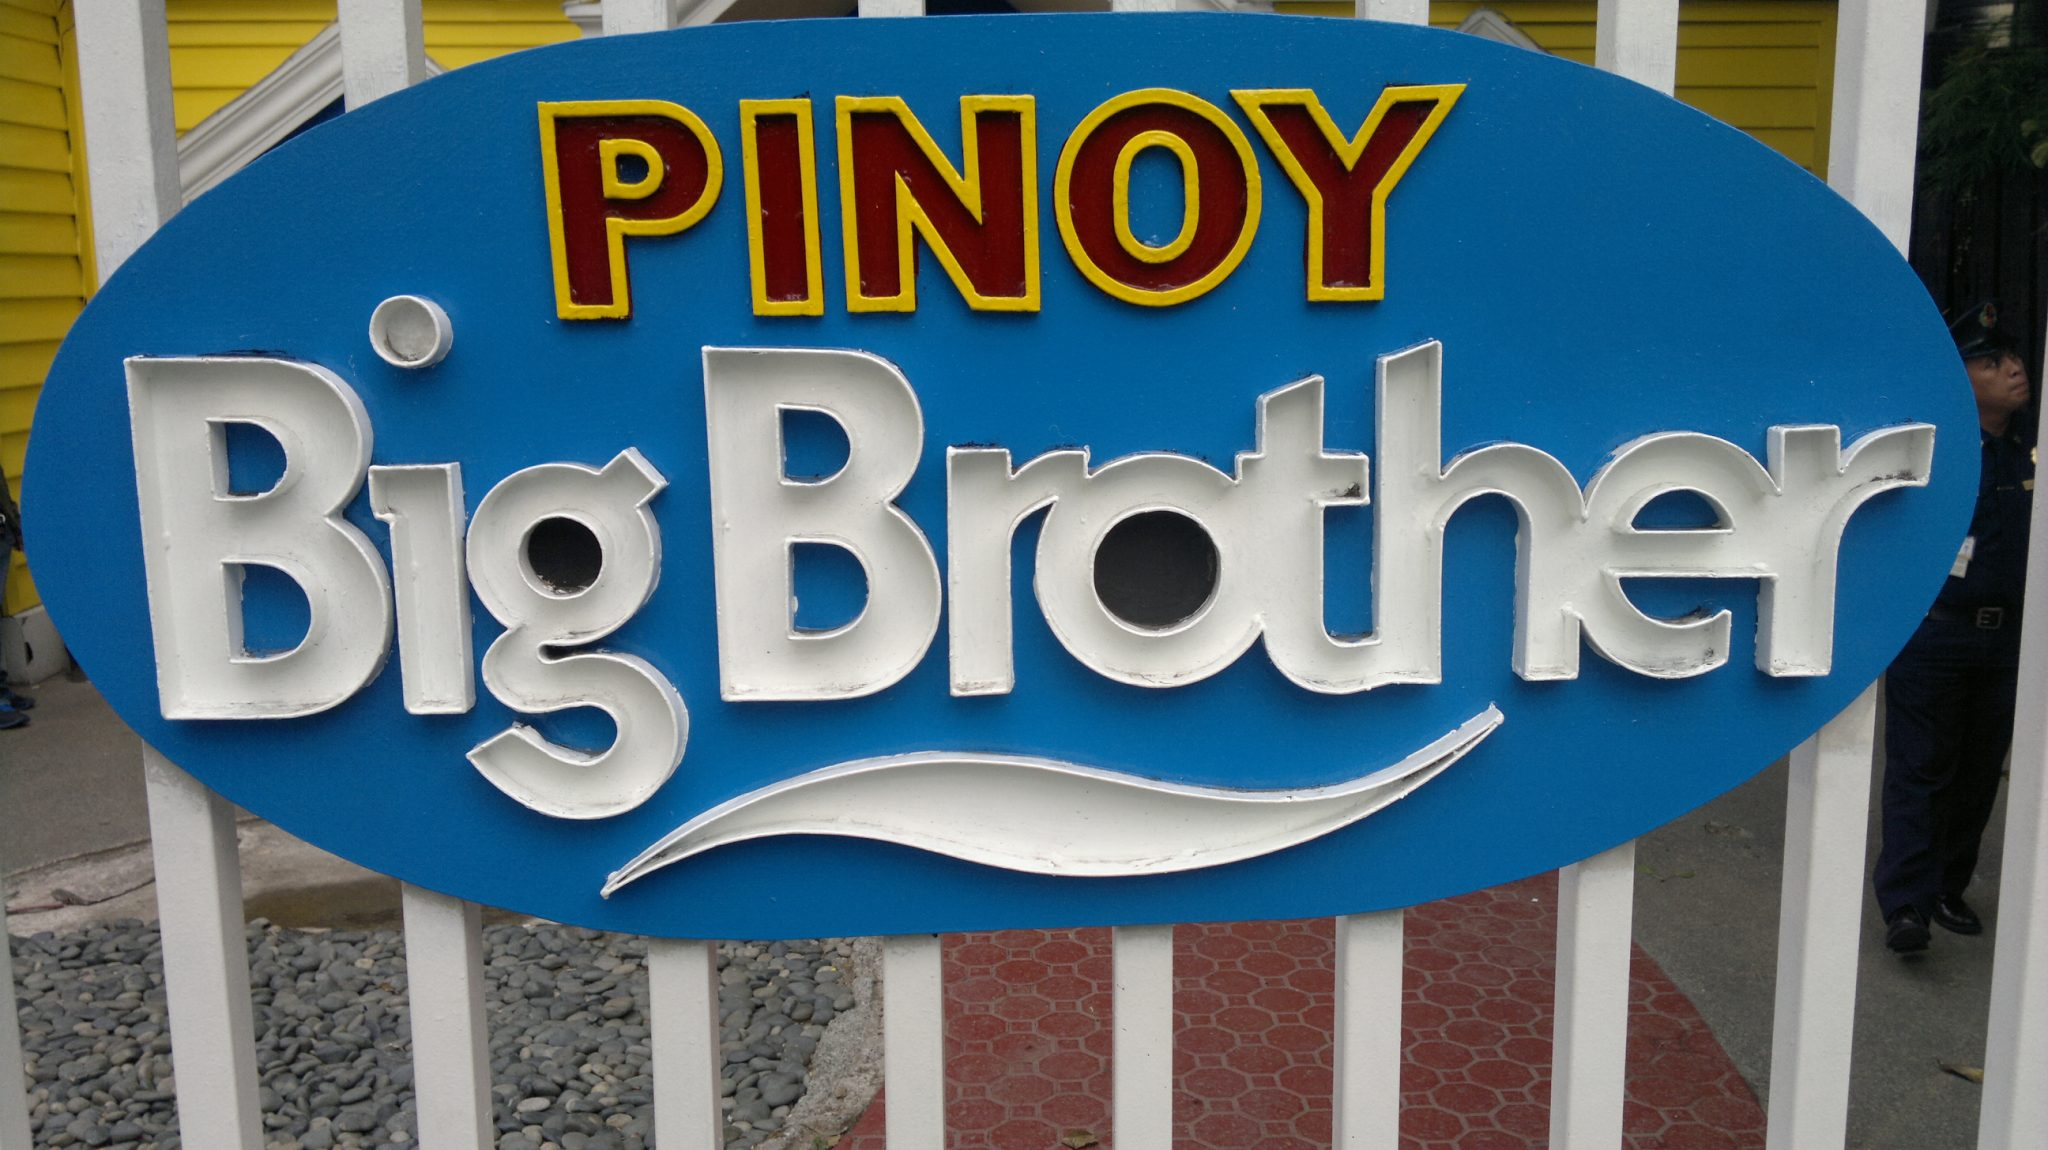 Pinoy Big Brother